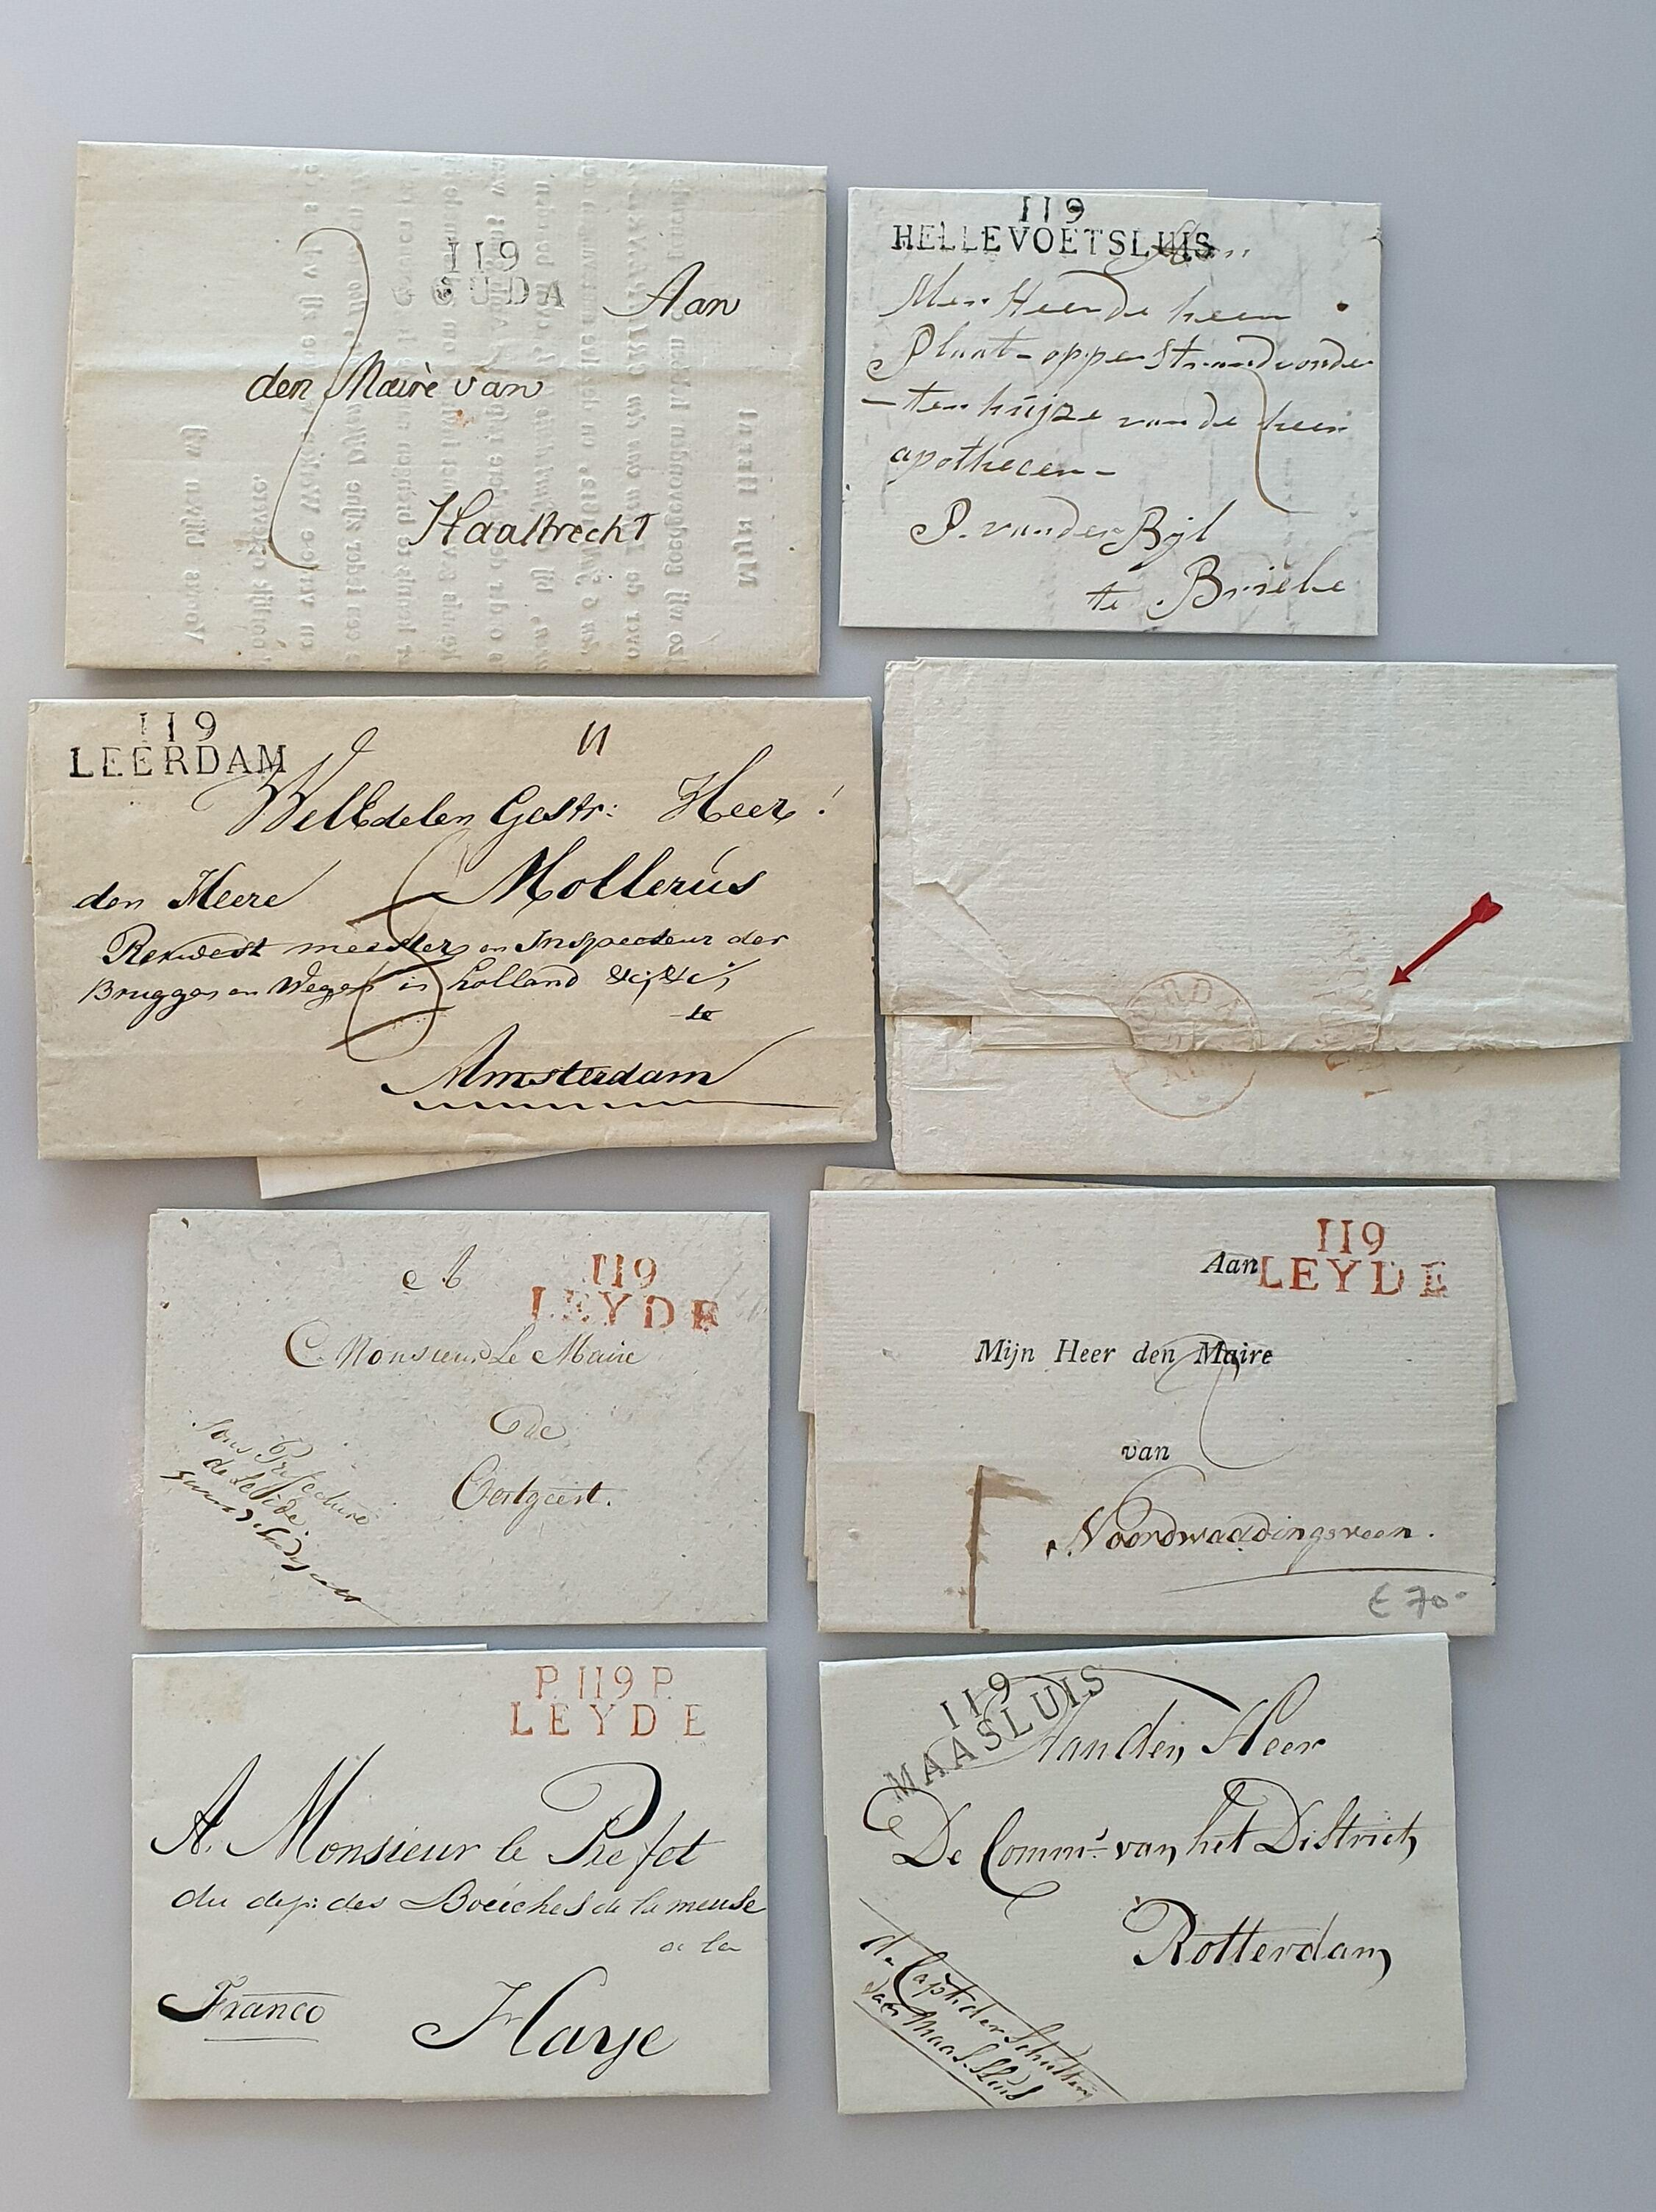 Lot 2345 - Netherlands and former colonies Netherlands -  Corinphila Veilingen Auction 250-253 - Day 3 - Netherlands and former colonies - Single lots & Picture postcards